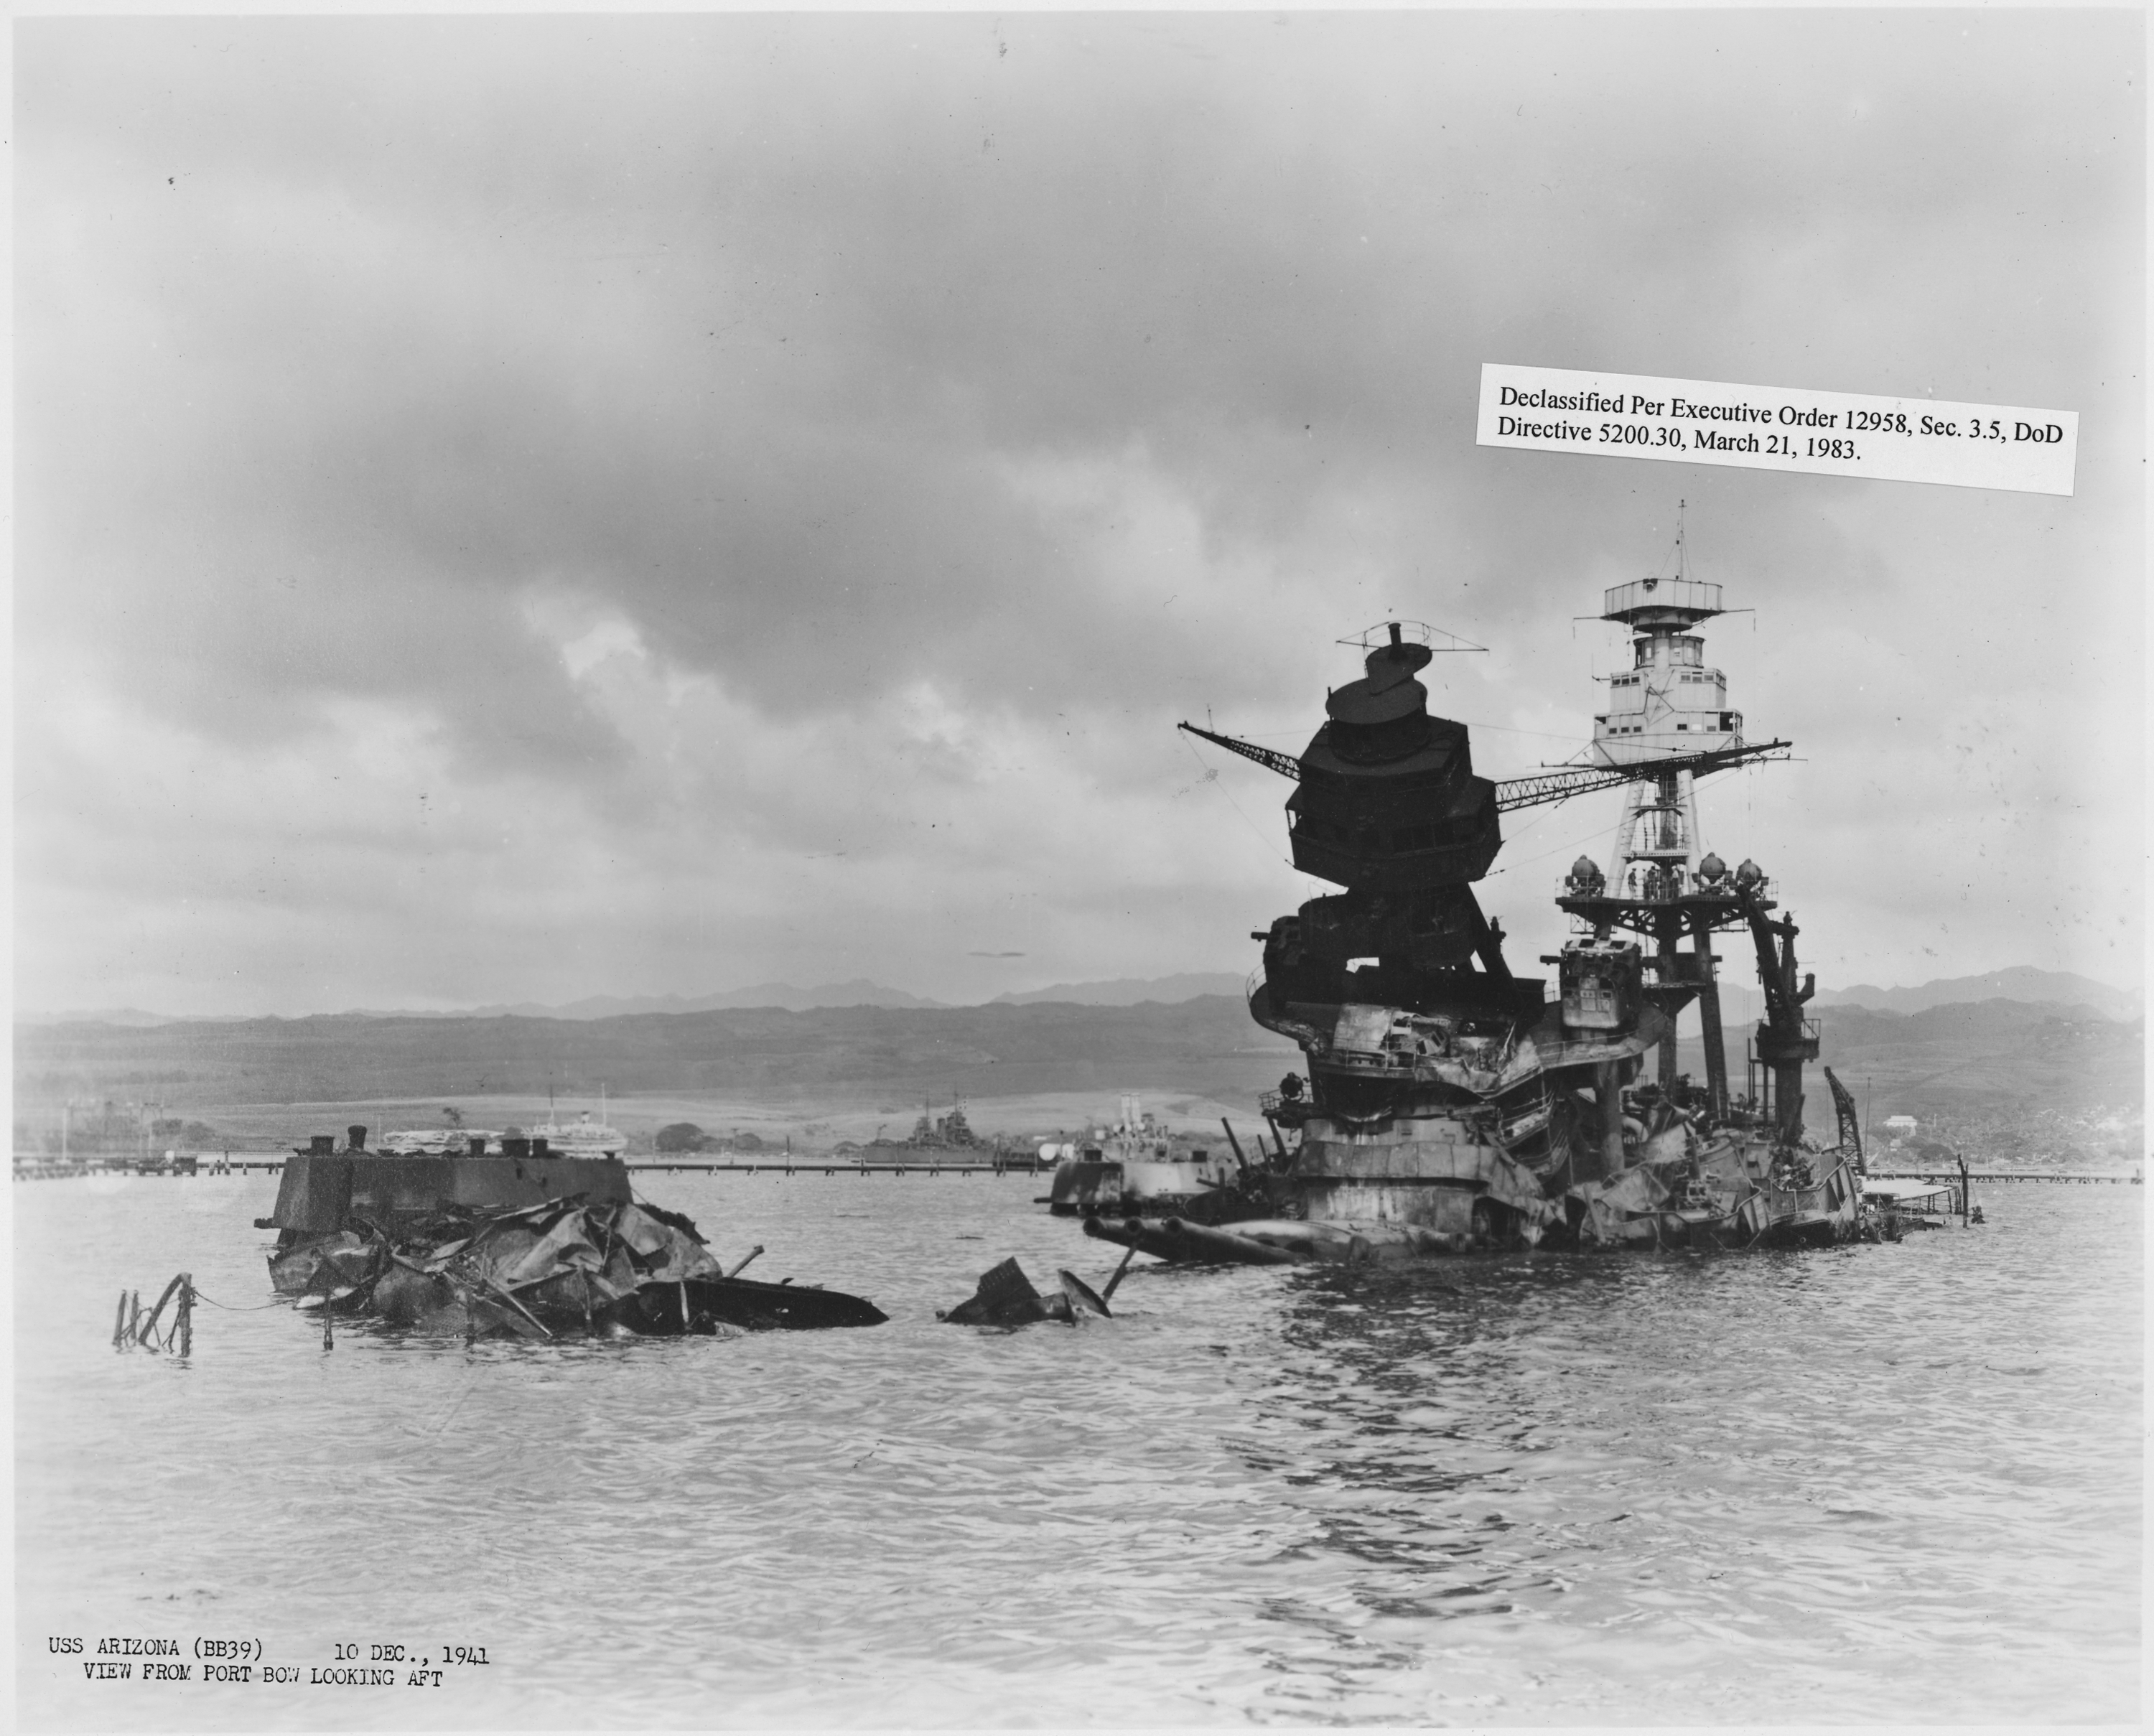 """a history of the uss arizona and the pearl harbor attack in the pacific The deadly surprise attack on the us pacific fleet at pearl harbor, launched without a declaration of war, made 7 december 1941 """"a date which will live in infamy,"""" in the attack on 'battleship row' on 7 december, two elderly battleships, the arizona and oklahoma, were damaged beyond repair by bomb or torpedo hits."""